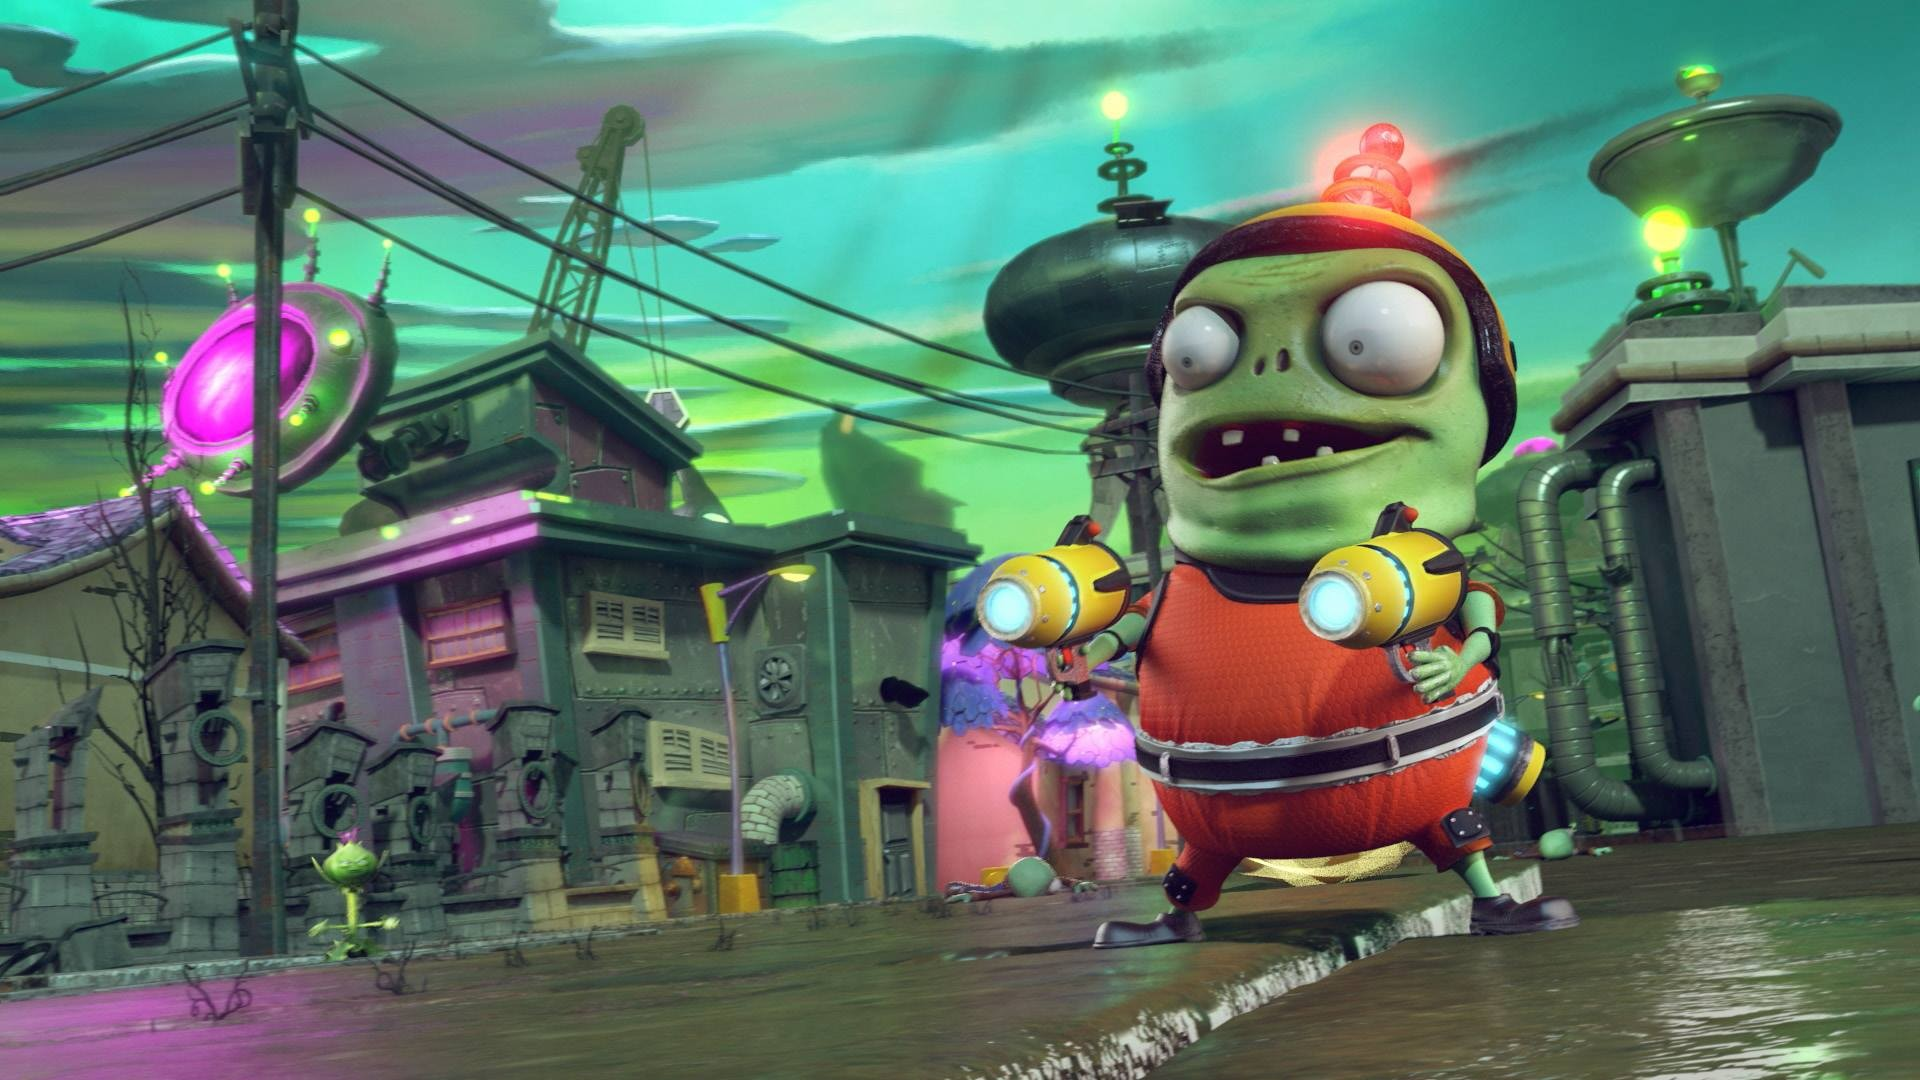 week the free variety pvzgw vs garden plants drone getting for pack warfare dlc this game zombies attack